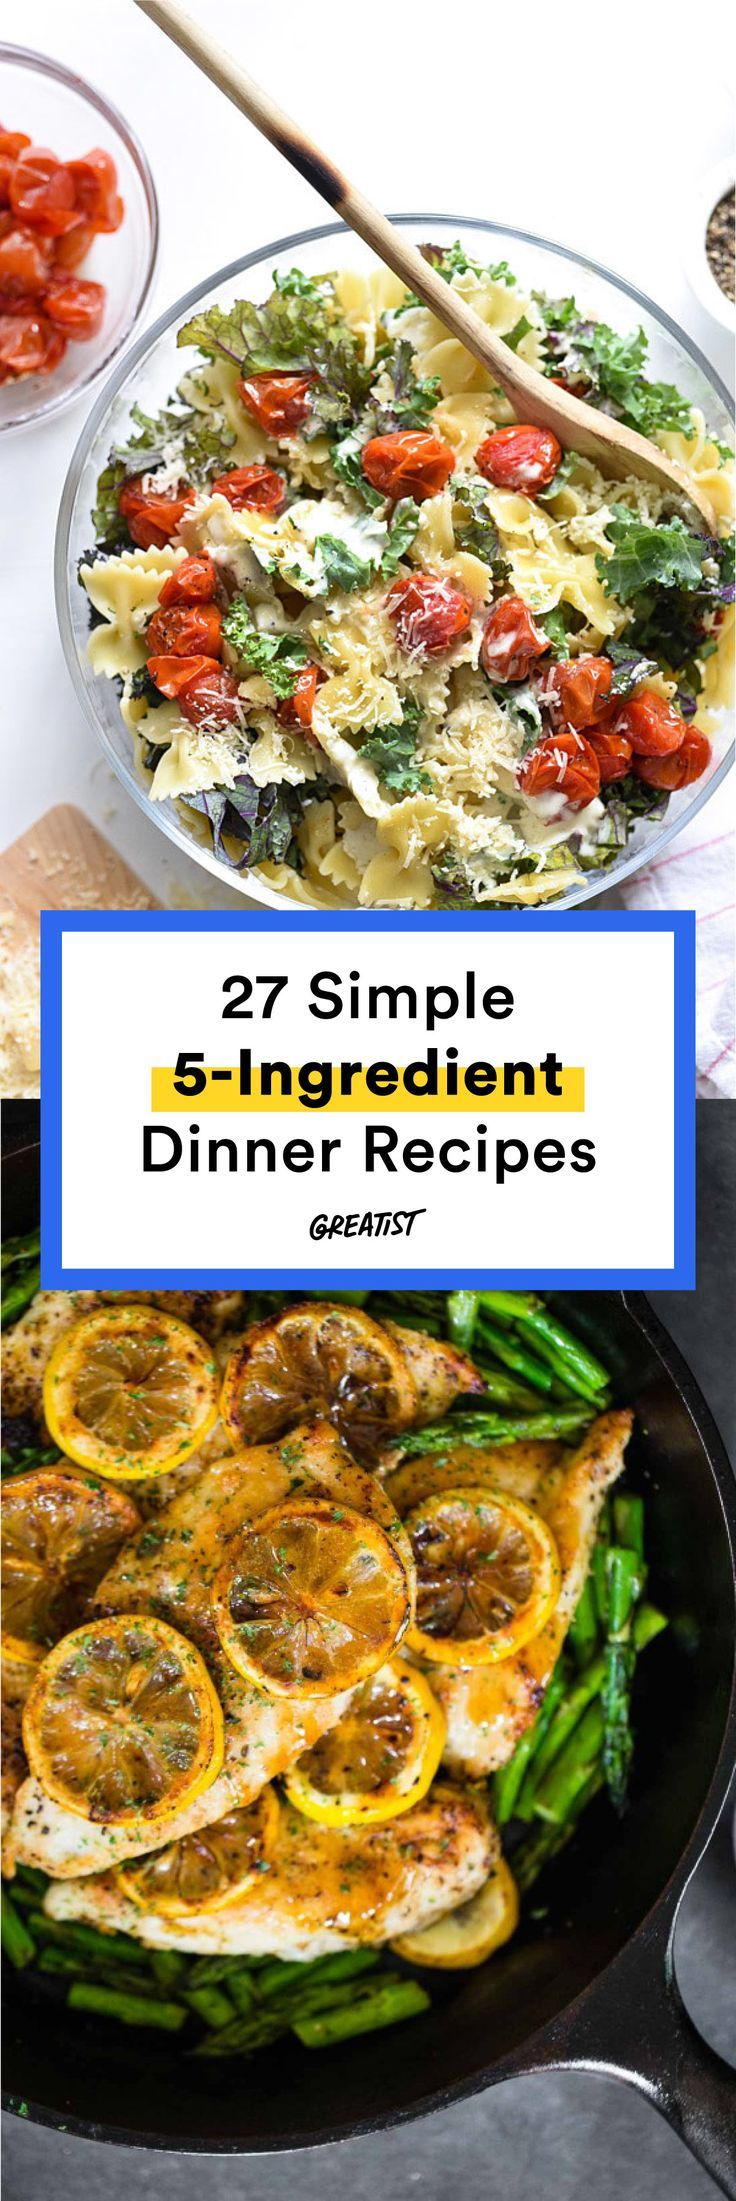 27 Five Ingredient Dinner Recipes For Stress Free Meals